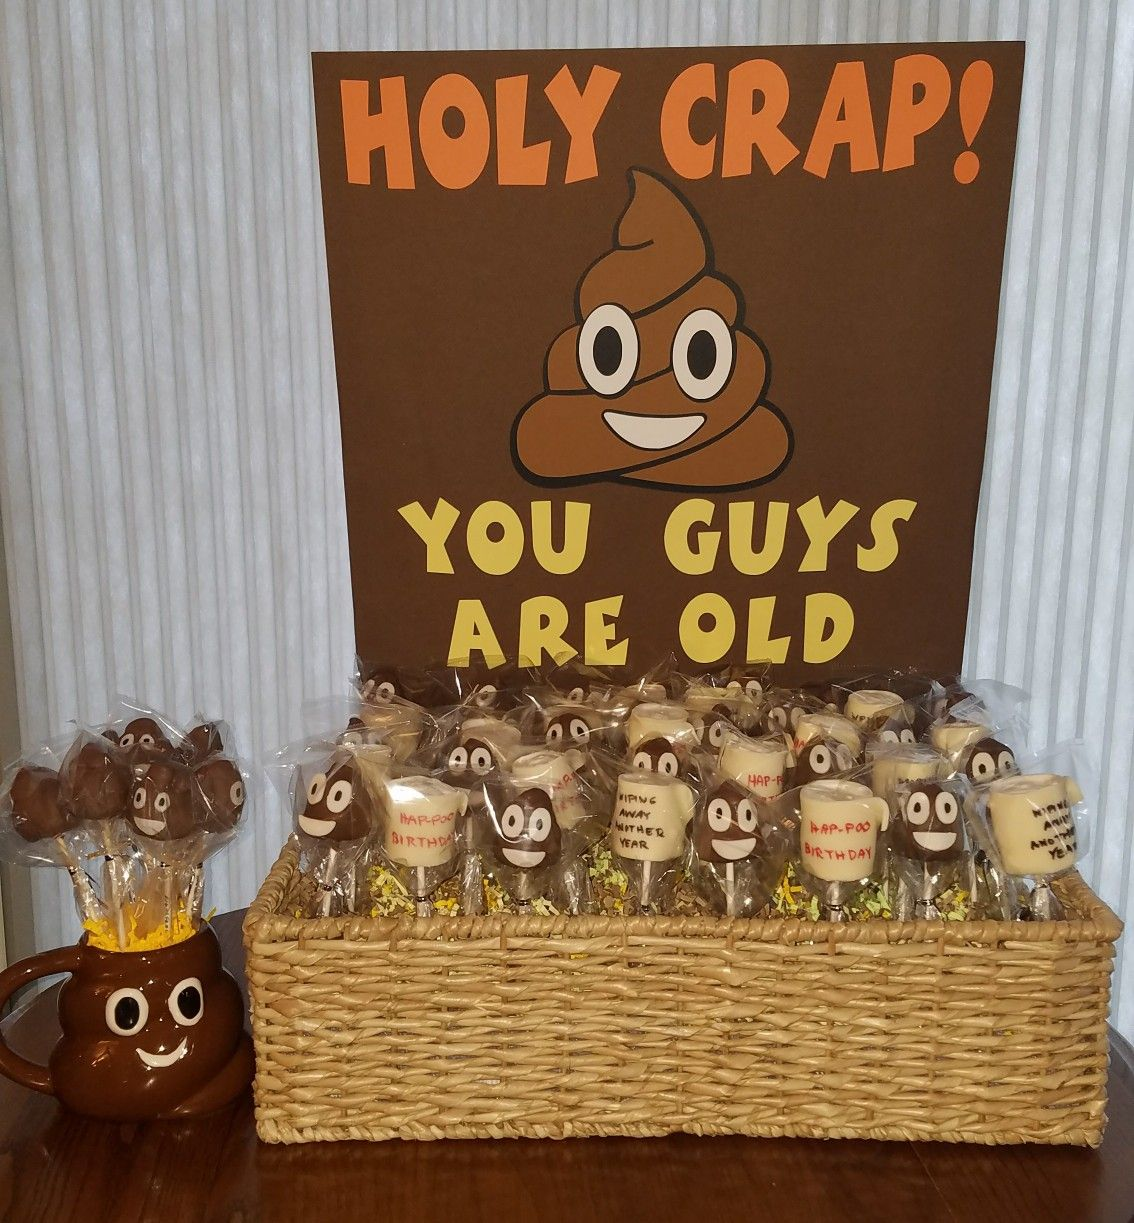 Cake Pops For 60th Birthday Party Husband And Brother Poop Emoji The Holy Crap Youre Old Theme